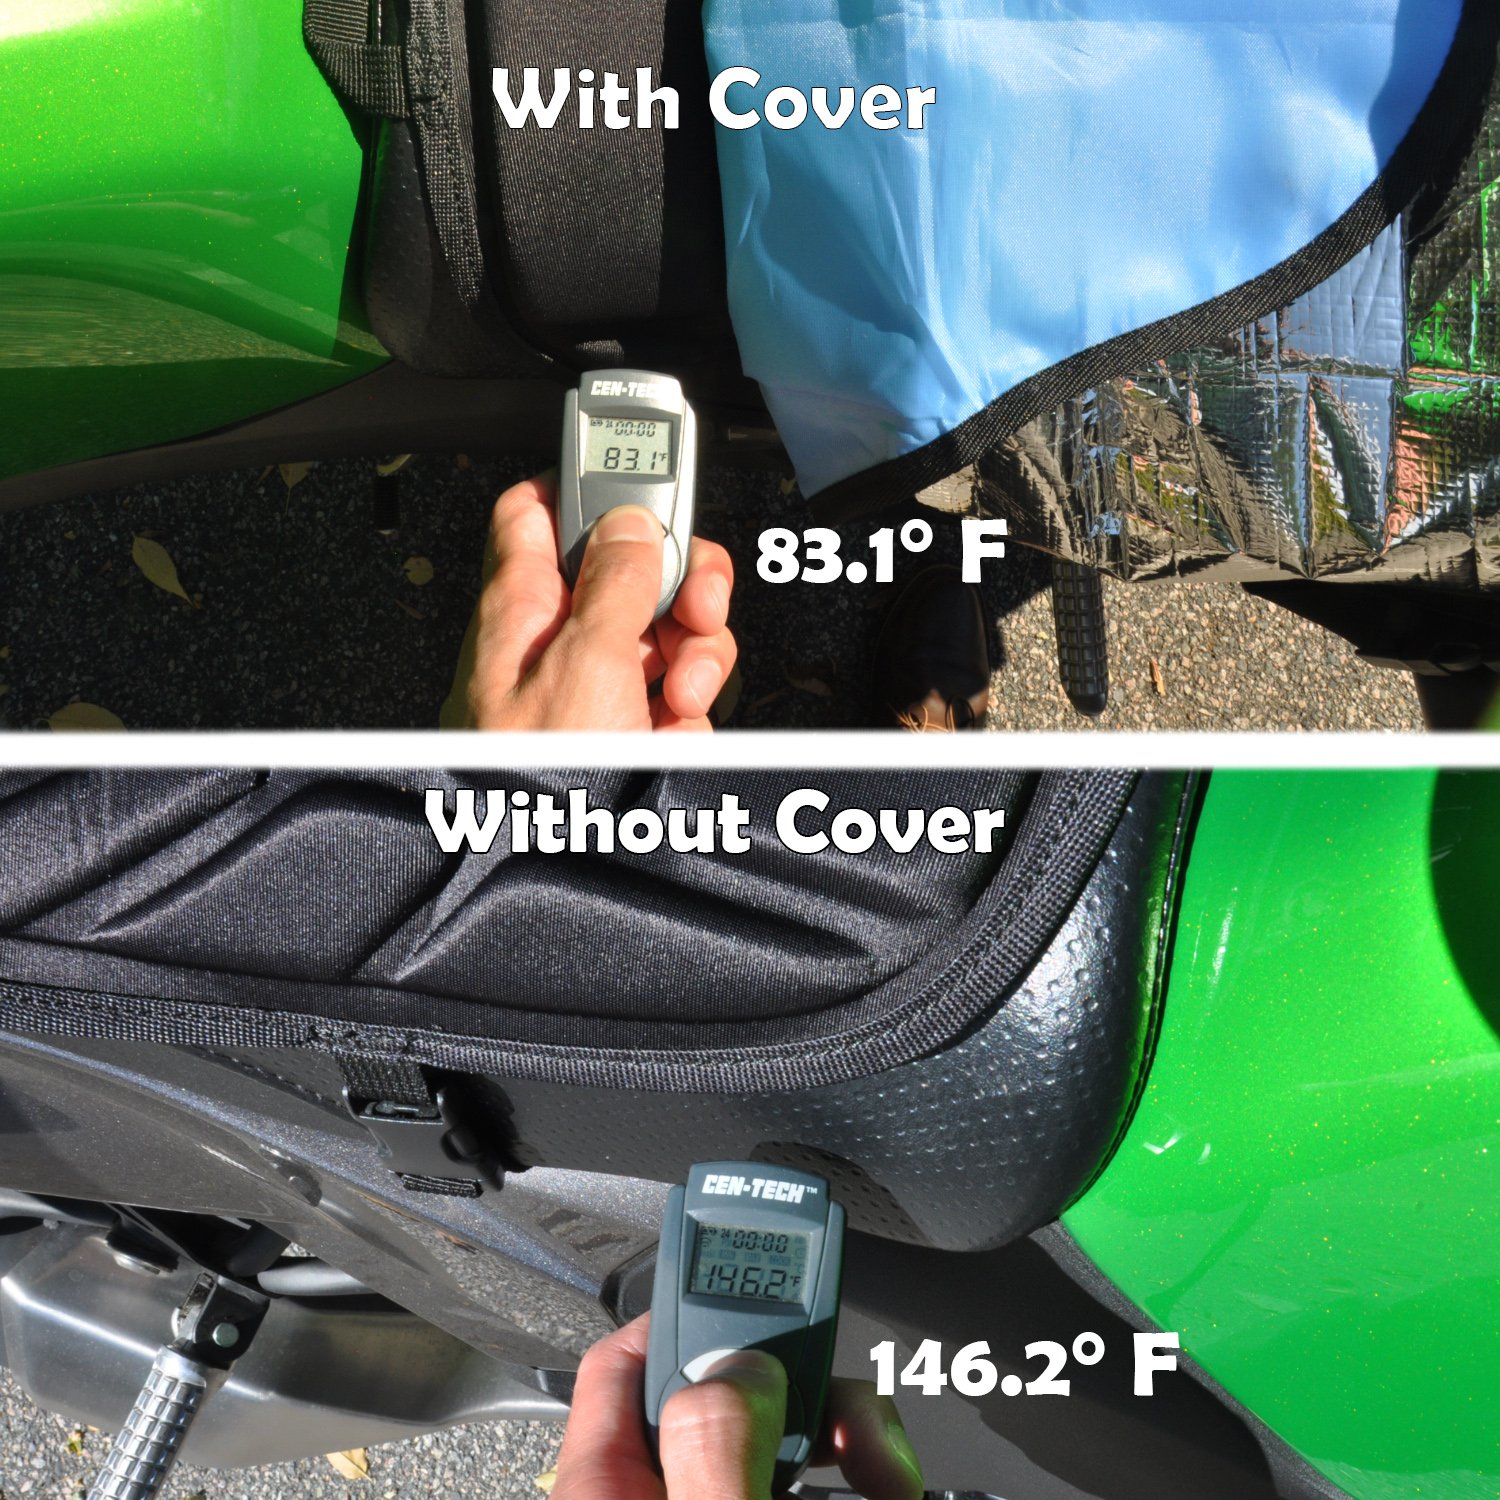 Heat Resistant Shield for a Cooler Motorbike Seat Compact with Nylon Drawstring Bag Sun Reflective Motorcycle Seat Cover by Metier Life Waterproof and Light Resistant Protection